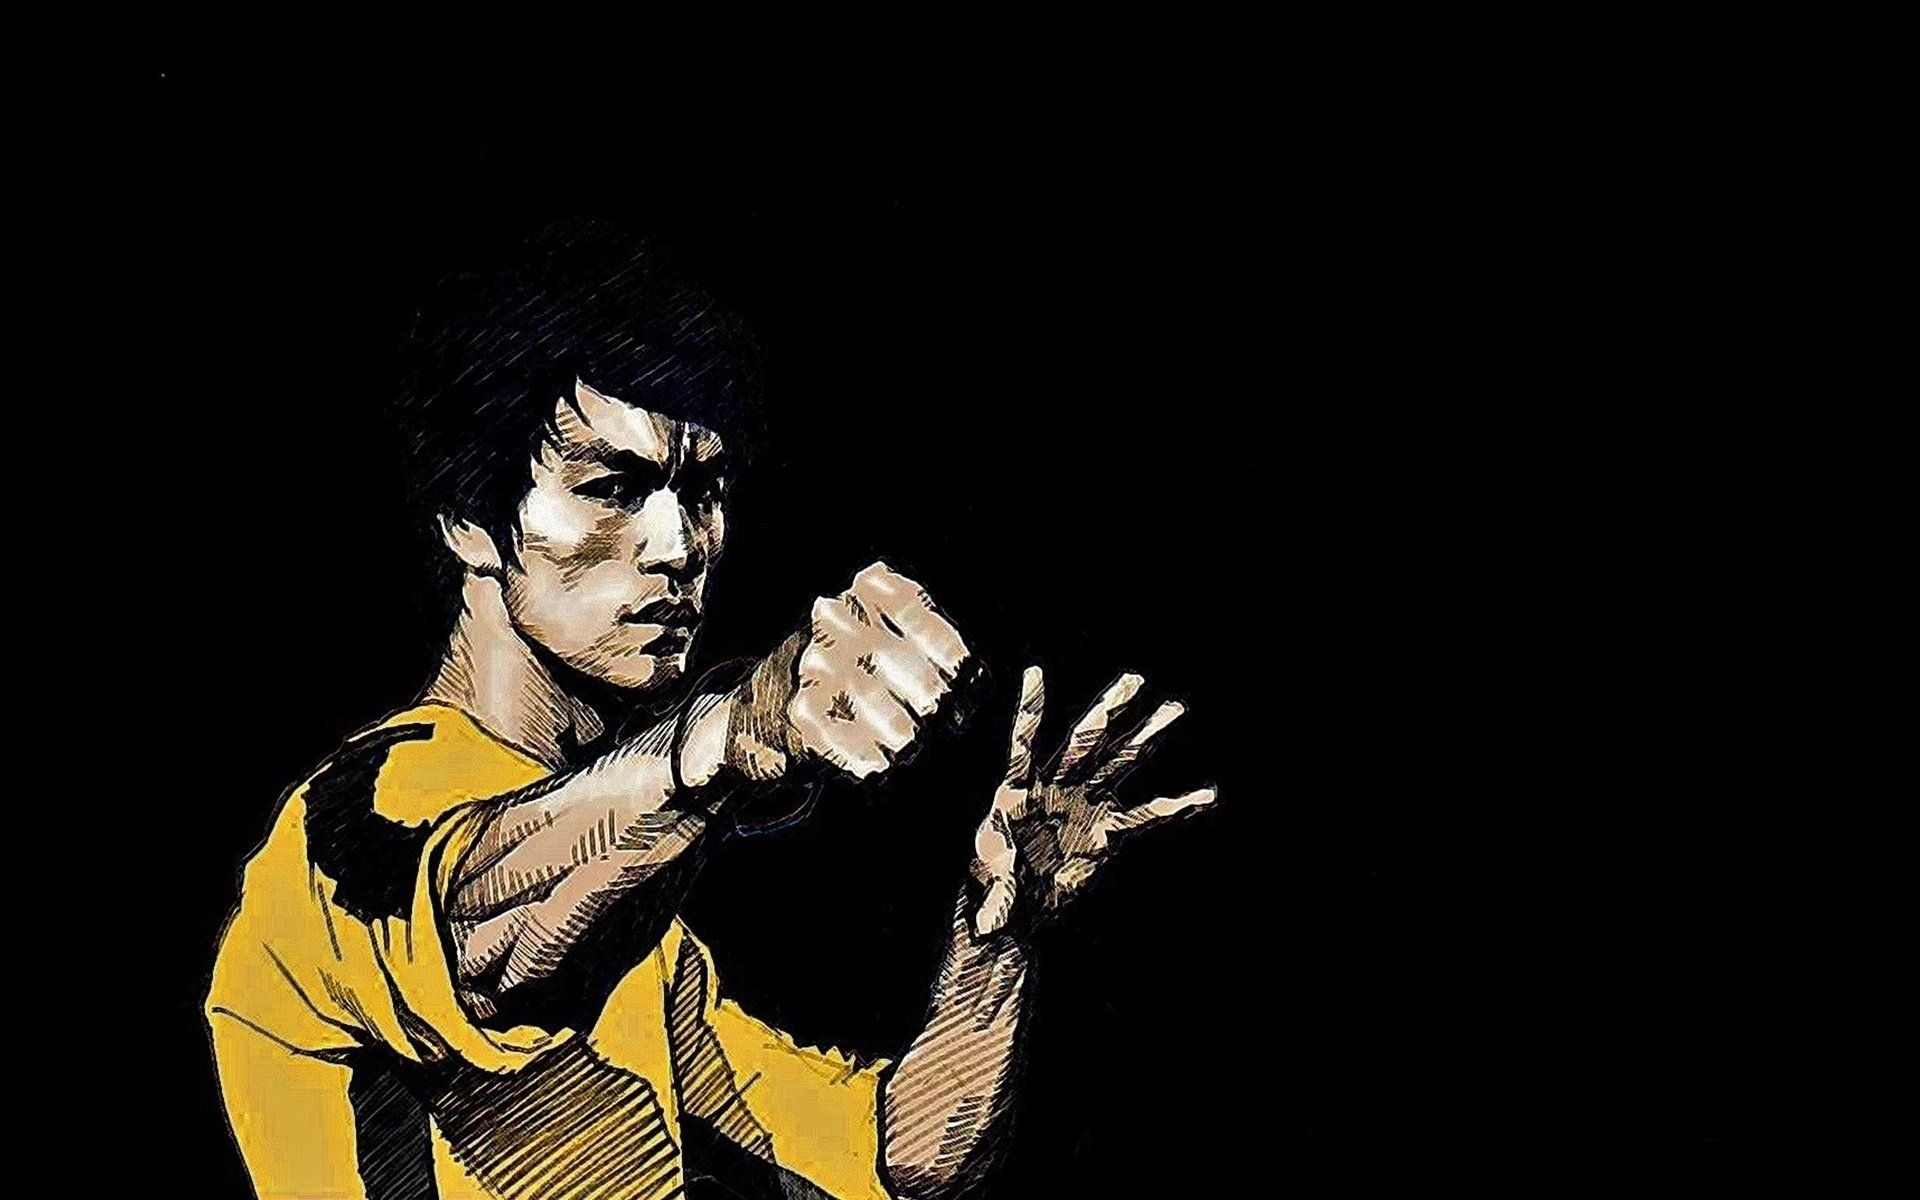 4k Bruce Lee Wallpapers Top Free 4k Bruce Lee Backgrounds